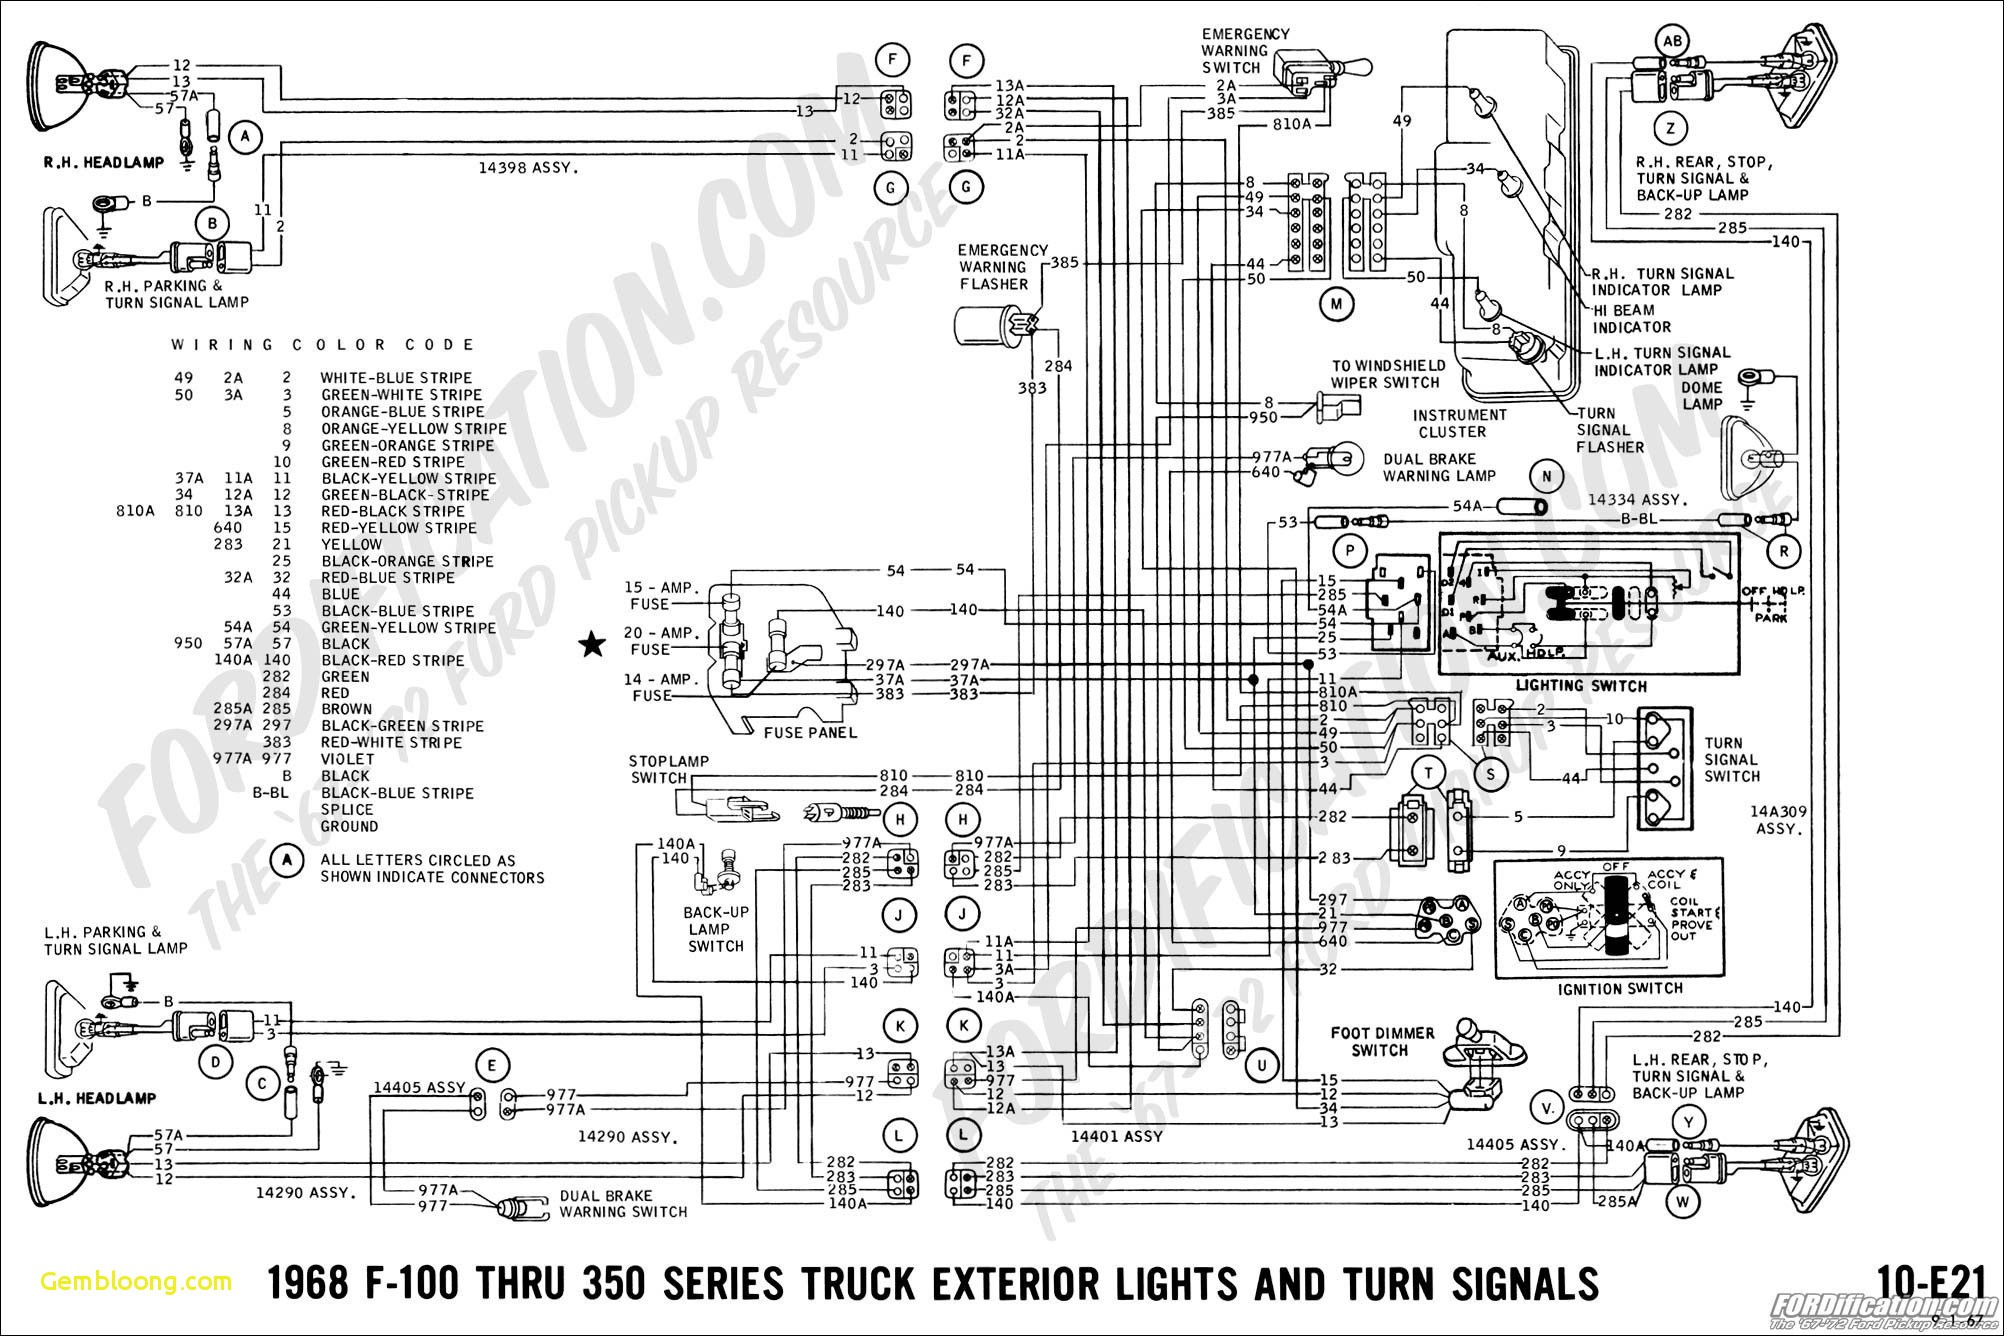 1996 ford F250 Tail Light Wiring Diagram 1978 ford F250 Wiring Diagram Schema Wiring Diagram Of 1996 ford F250 Tail Light Wiring Diagram